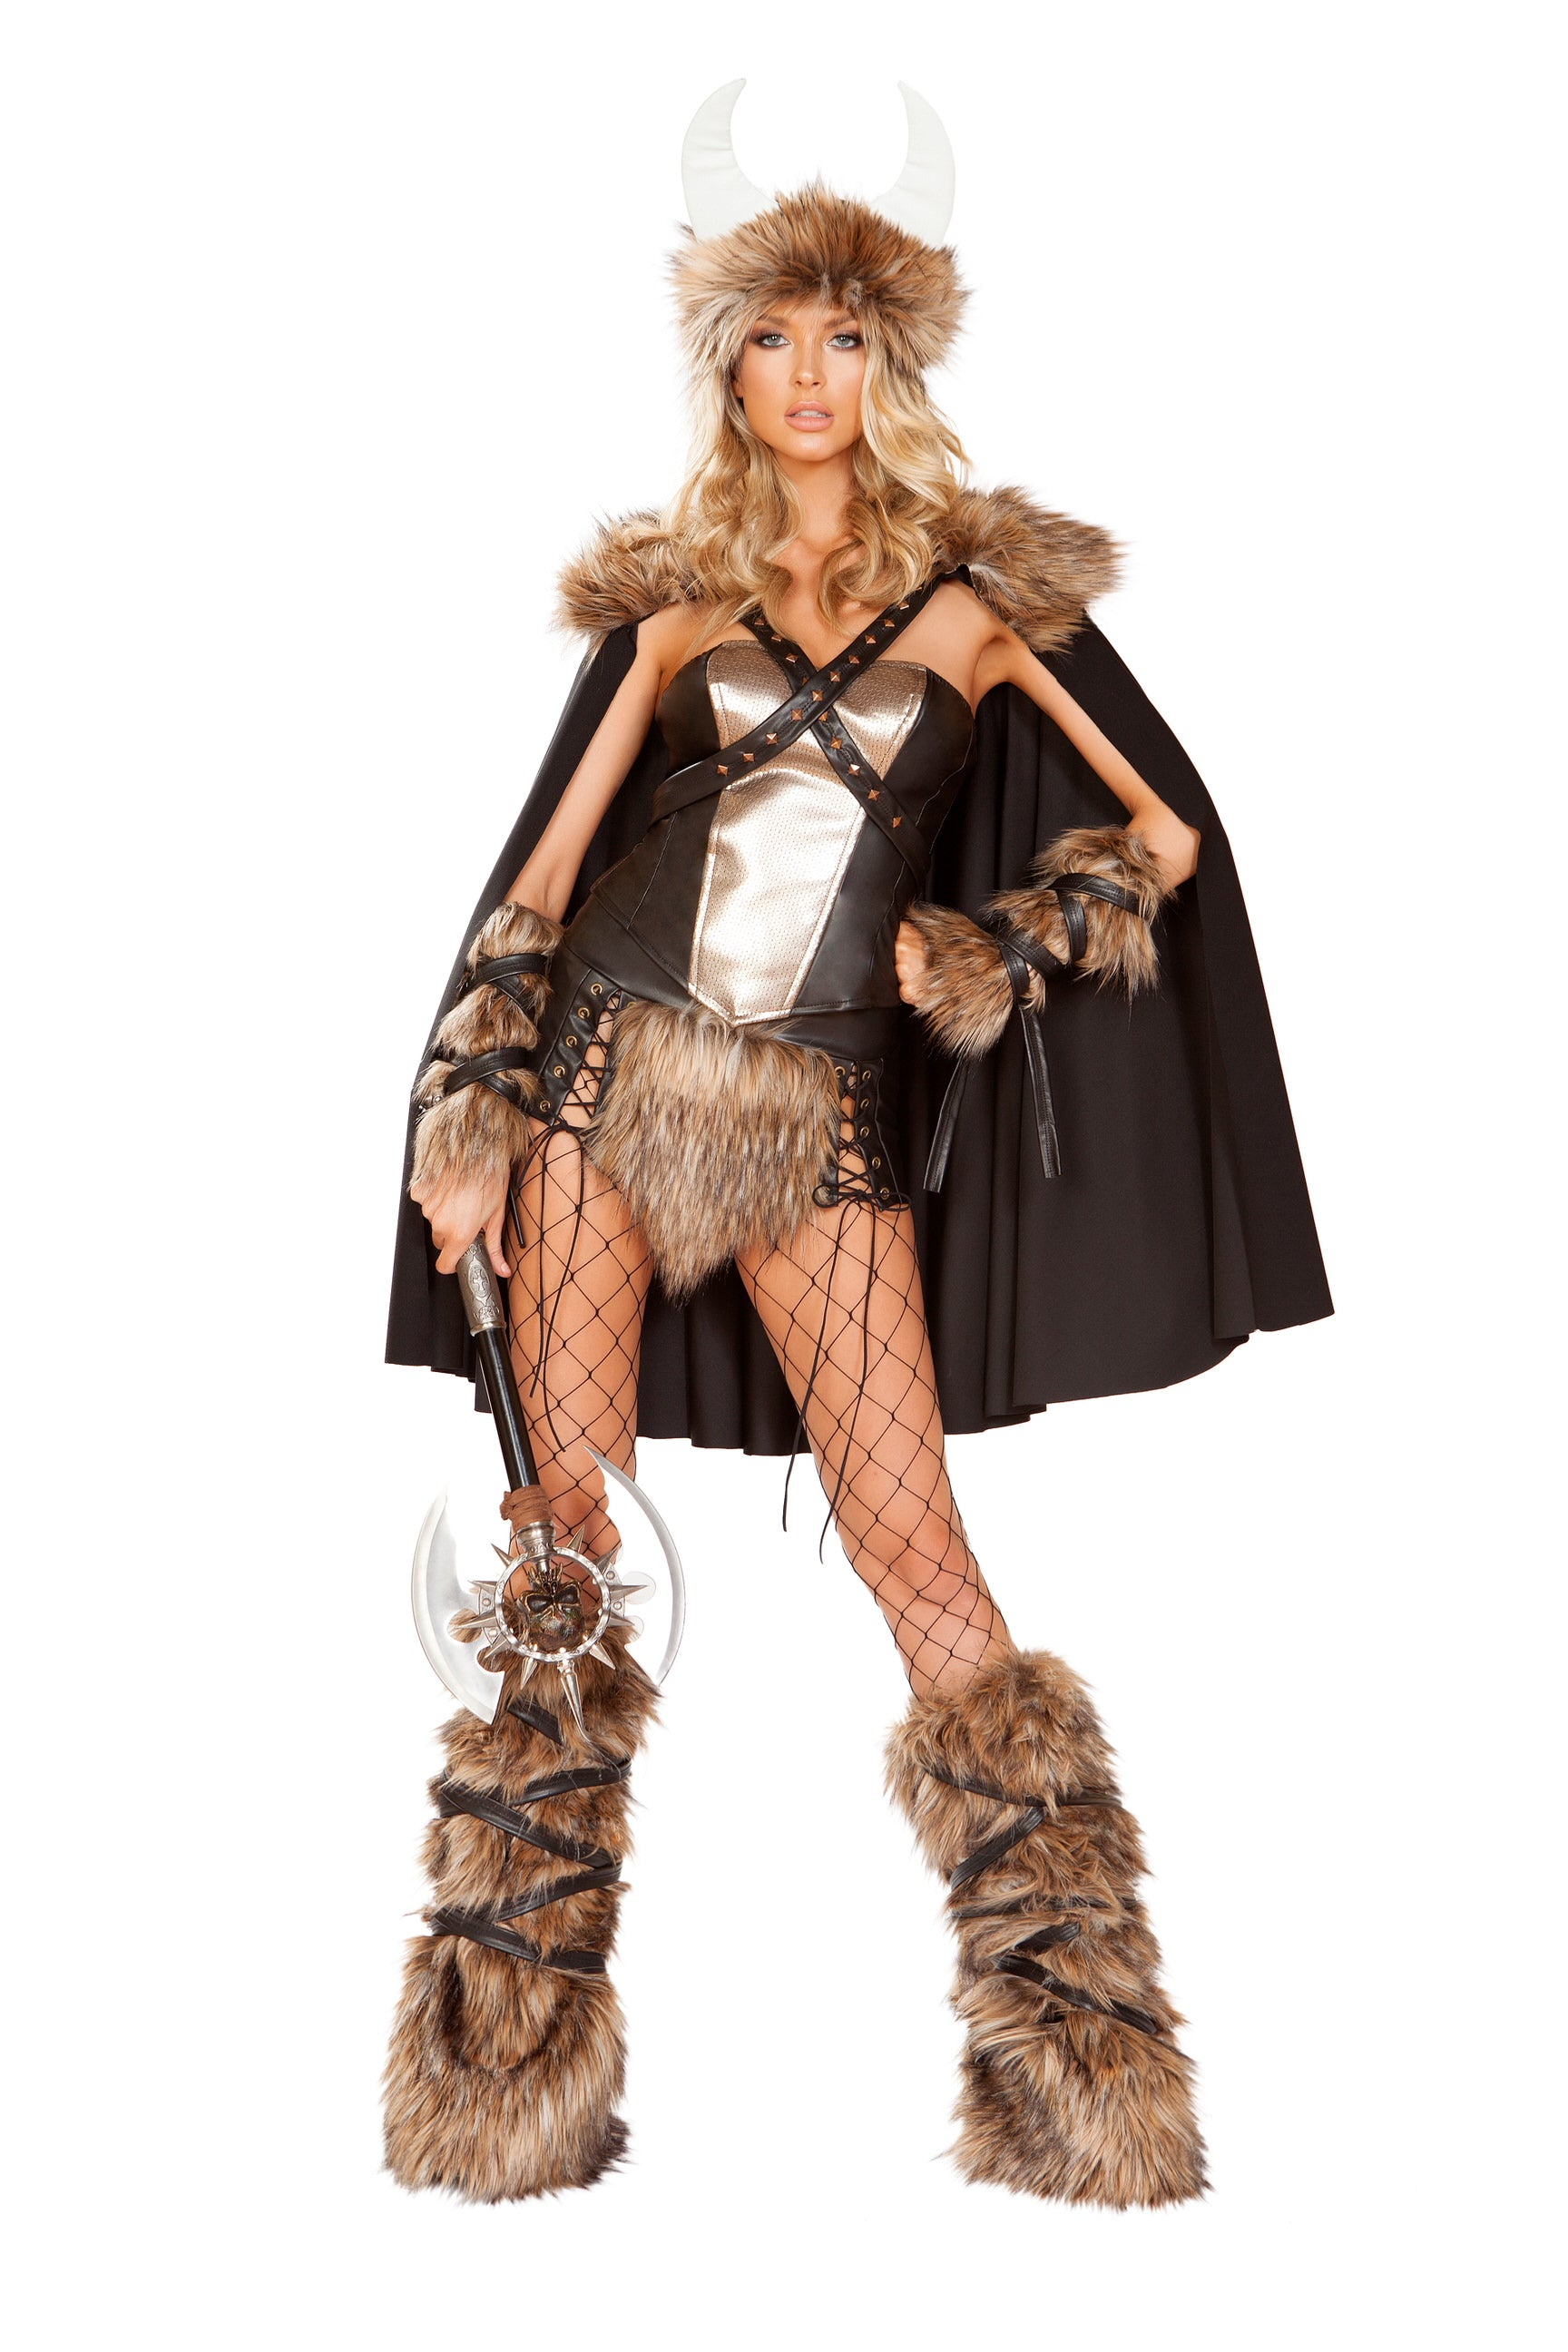 4892 - 4pc Viking Warrior ${description} | Roma Costume and Roma Confidential wholesale manufacturer of Women Apparel bulk world wide wholesale and world wide drop ship services for Adult Halloween Costumes, Sexy and Elegant Lingerie, Rave Clothing, Club wear, and Christmas Costumes. Costumes, Roma Costume, Inc., Roma Costume, Roma Confidential, Wholesale clothing, drop ship, drop ship service, Wholesale Lingerie, Wholesale Adult Halloween Costumes, Rave Clothing, EDM Clothing, Festival Wear, Christmas Costumes, Clubwear, Club wear.